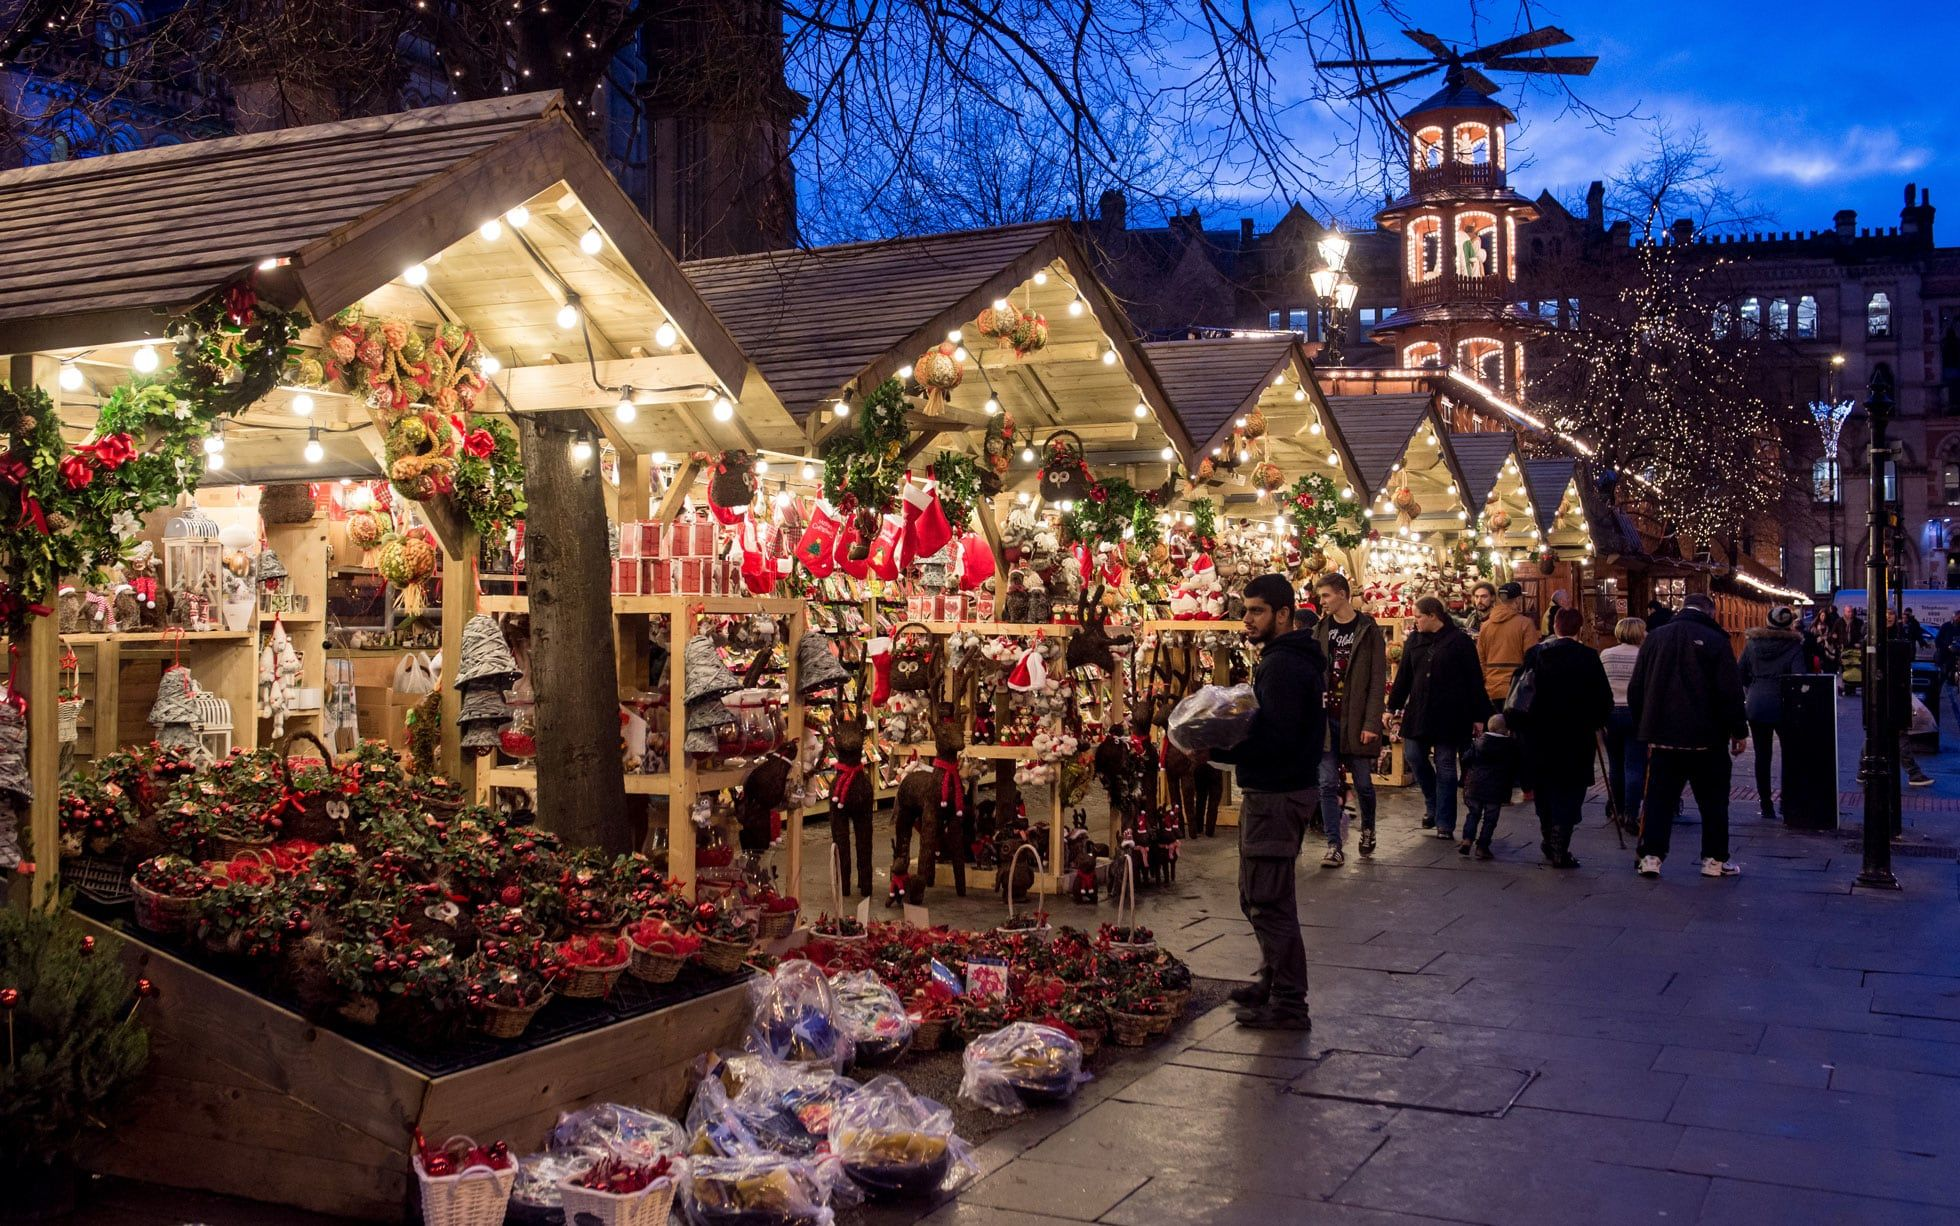 Google Image Result For Https Www Telegraph Co Uk Content Dam Travel 2018 Novemb Christmas Markets Europe Best Christmas Markets Manchester Christmas Markets